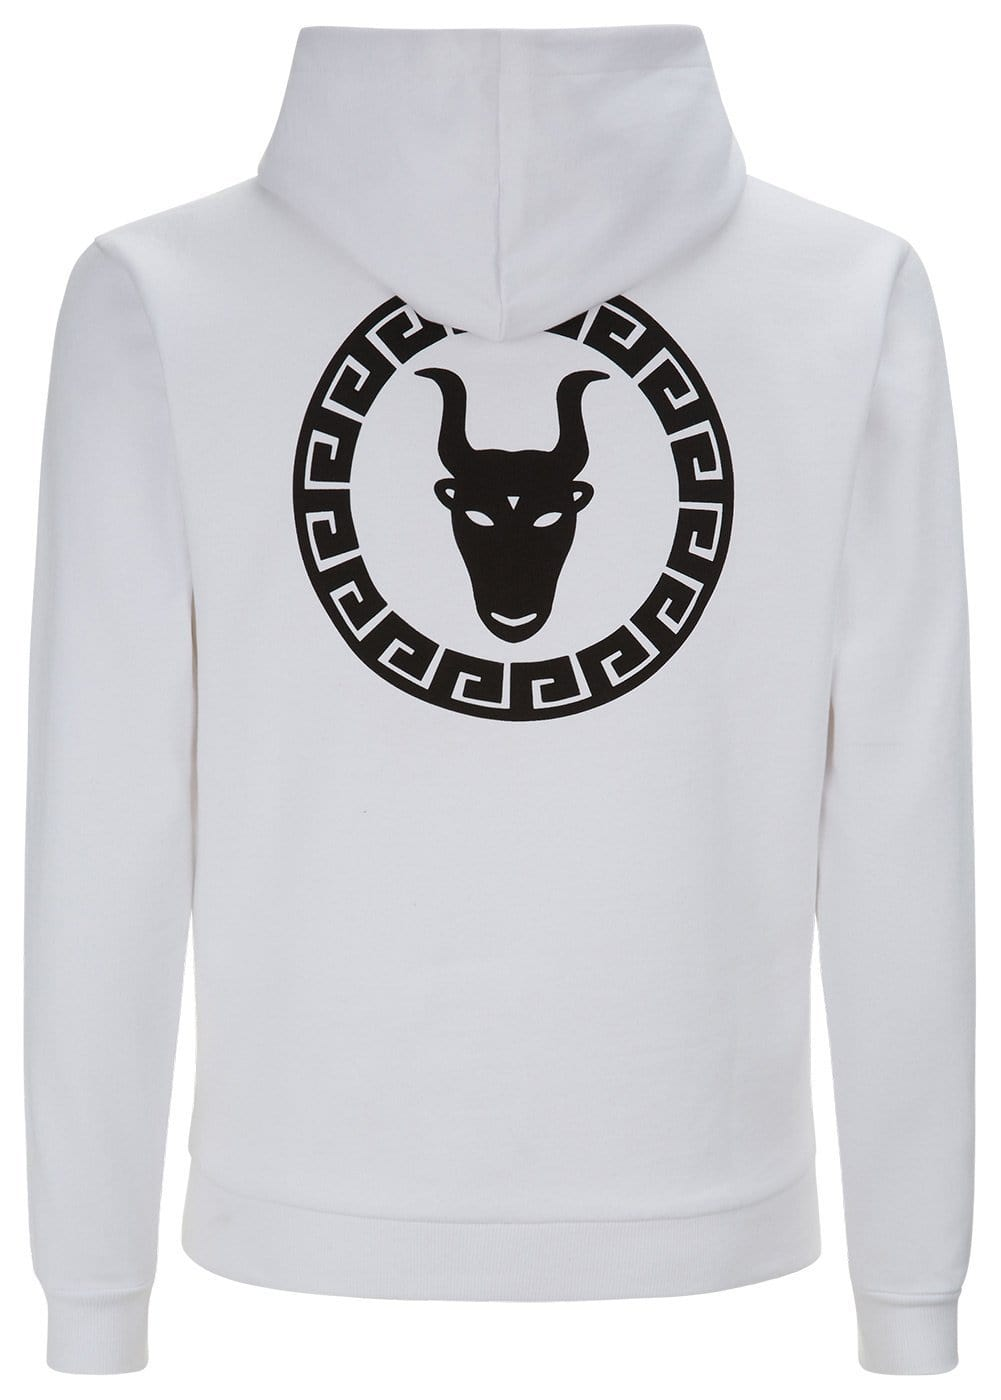 Boys White Zip-Up Toro Hoodie - Back